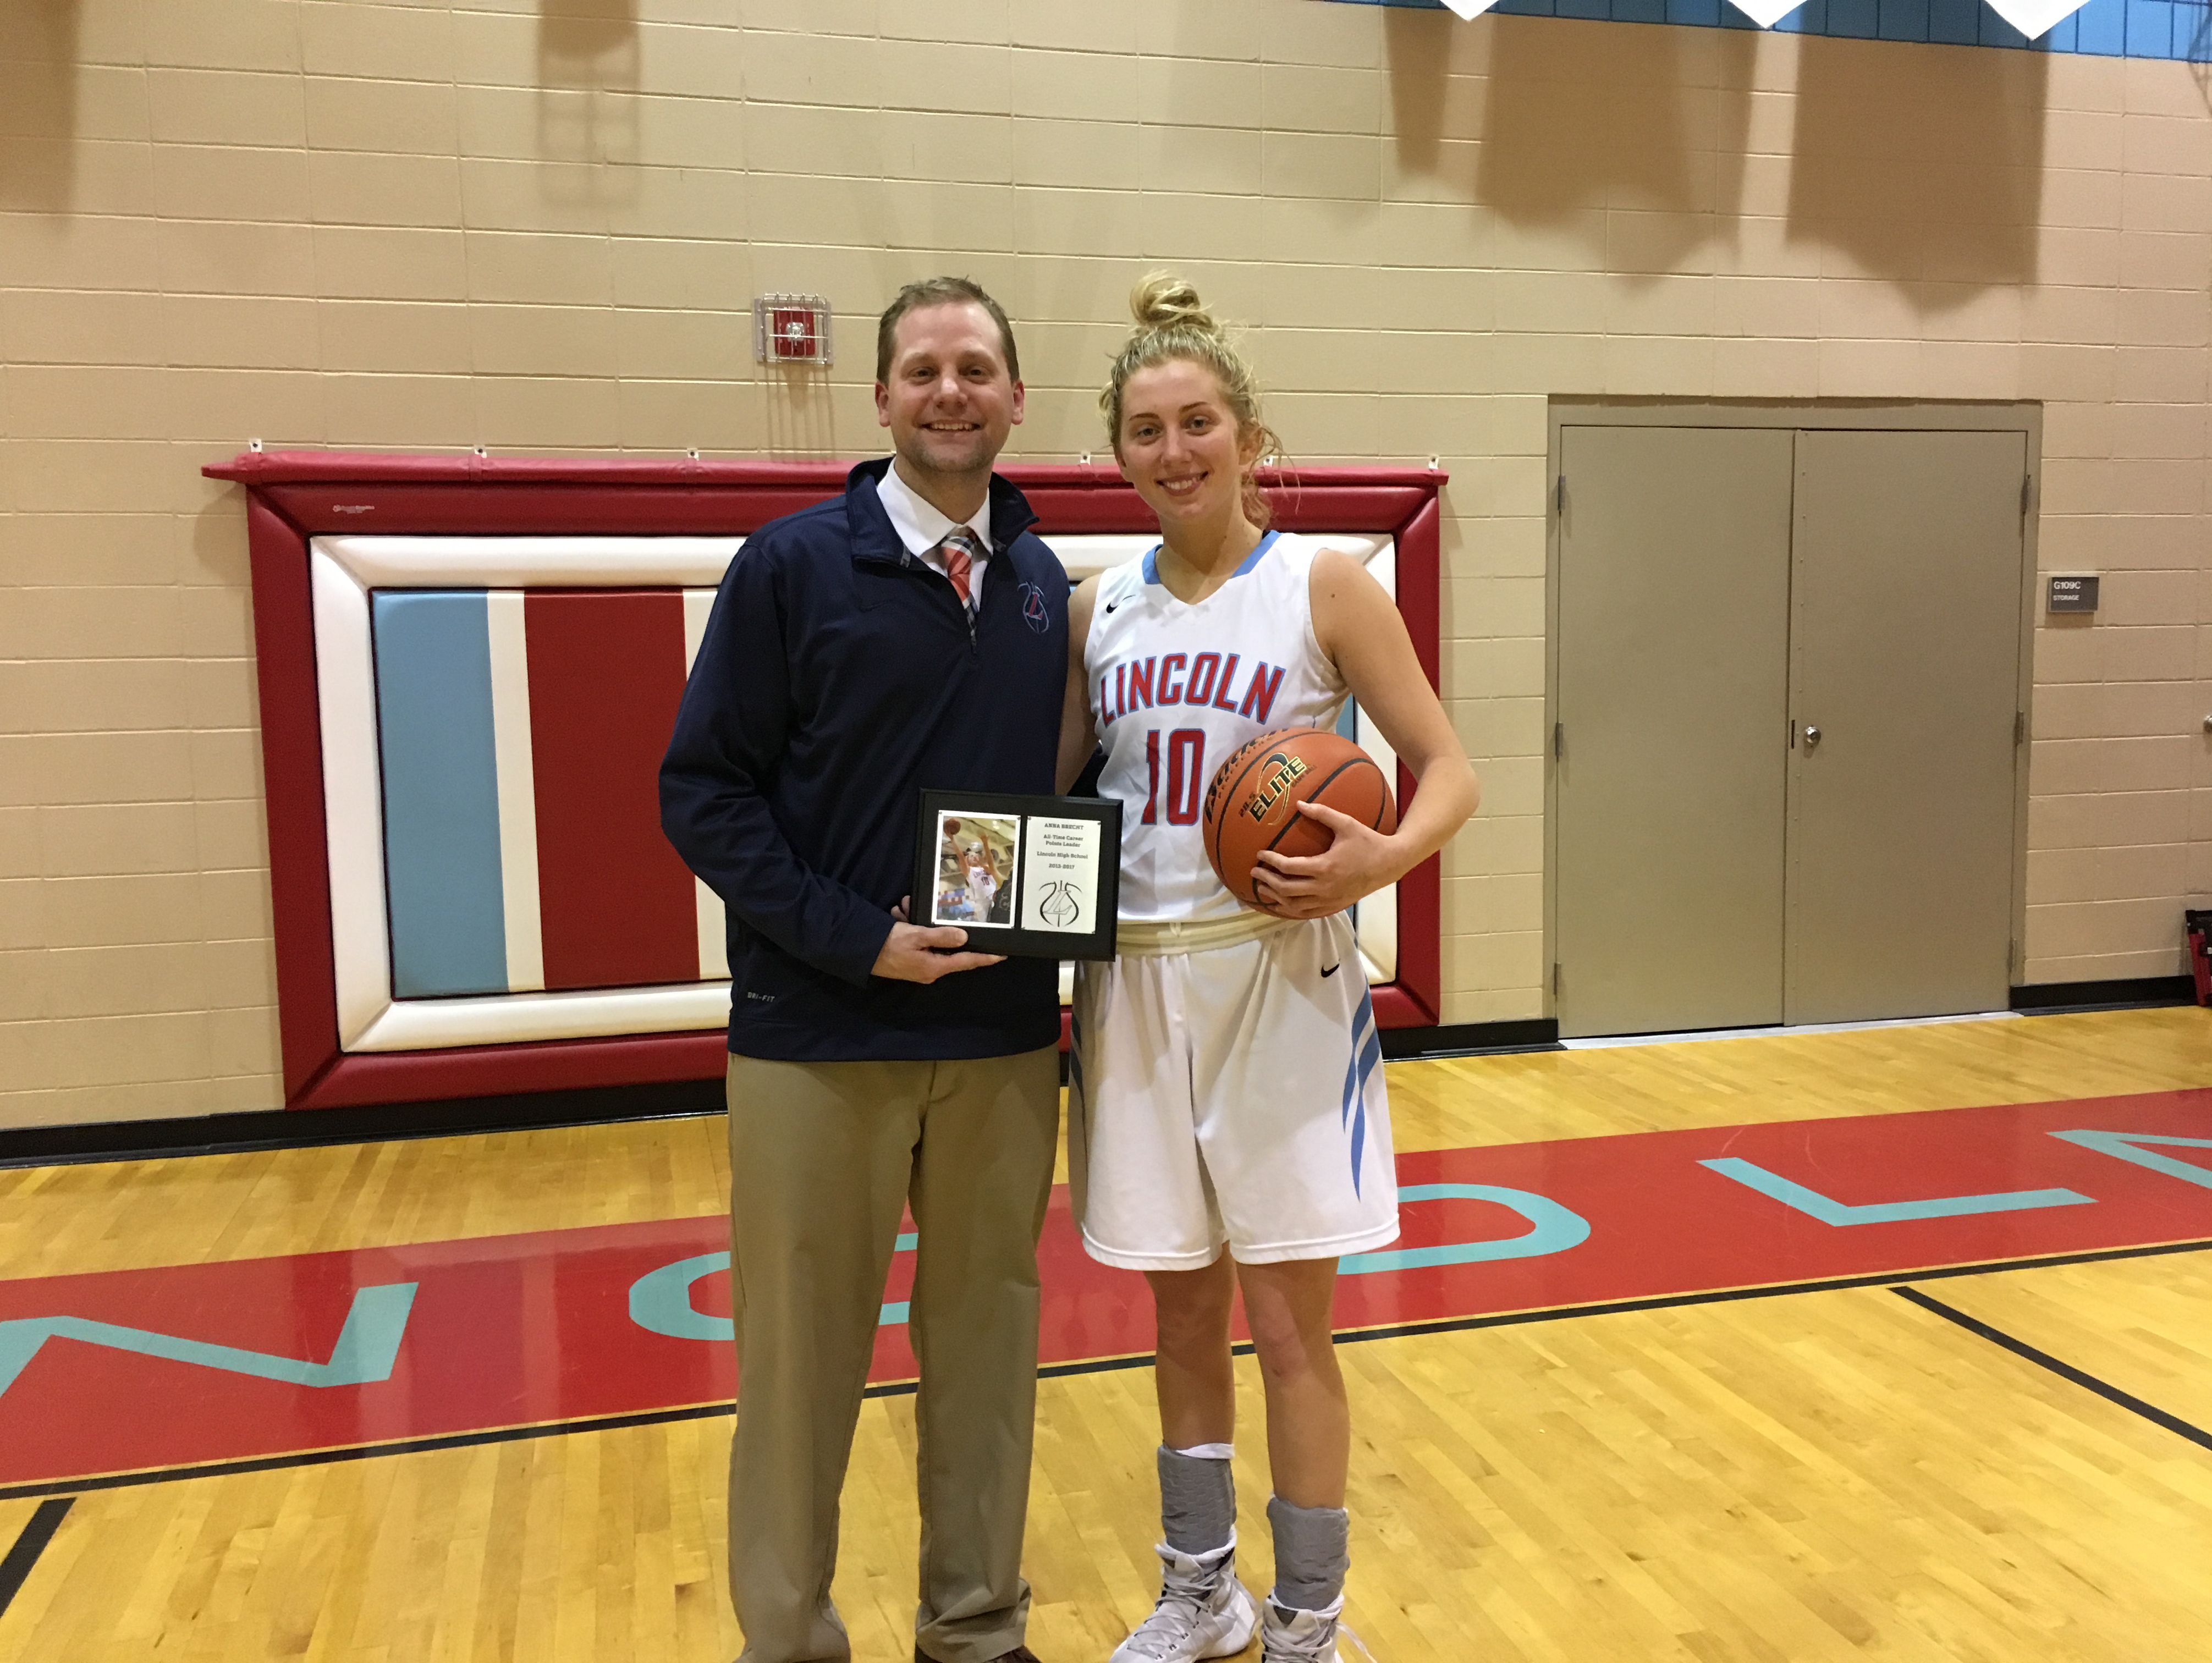 Anna Brecht poses with head coach Matt Daly after breaking Sioux Falls Lincoln's career scoring record on Tues., Jan. 10, 2017 against Yankton.